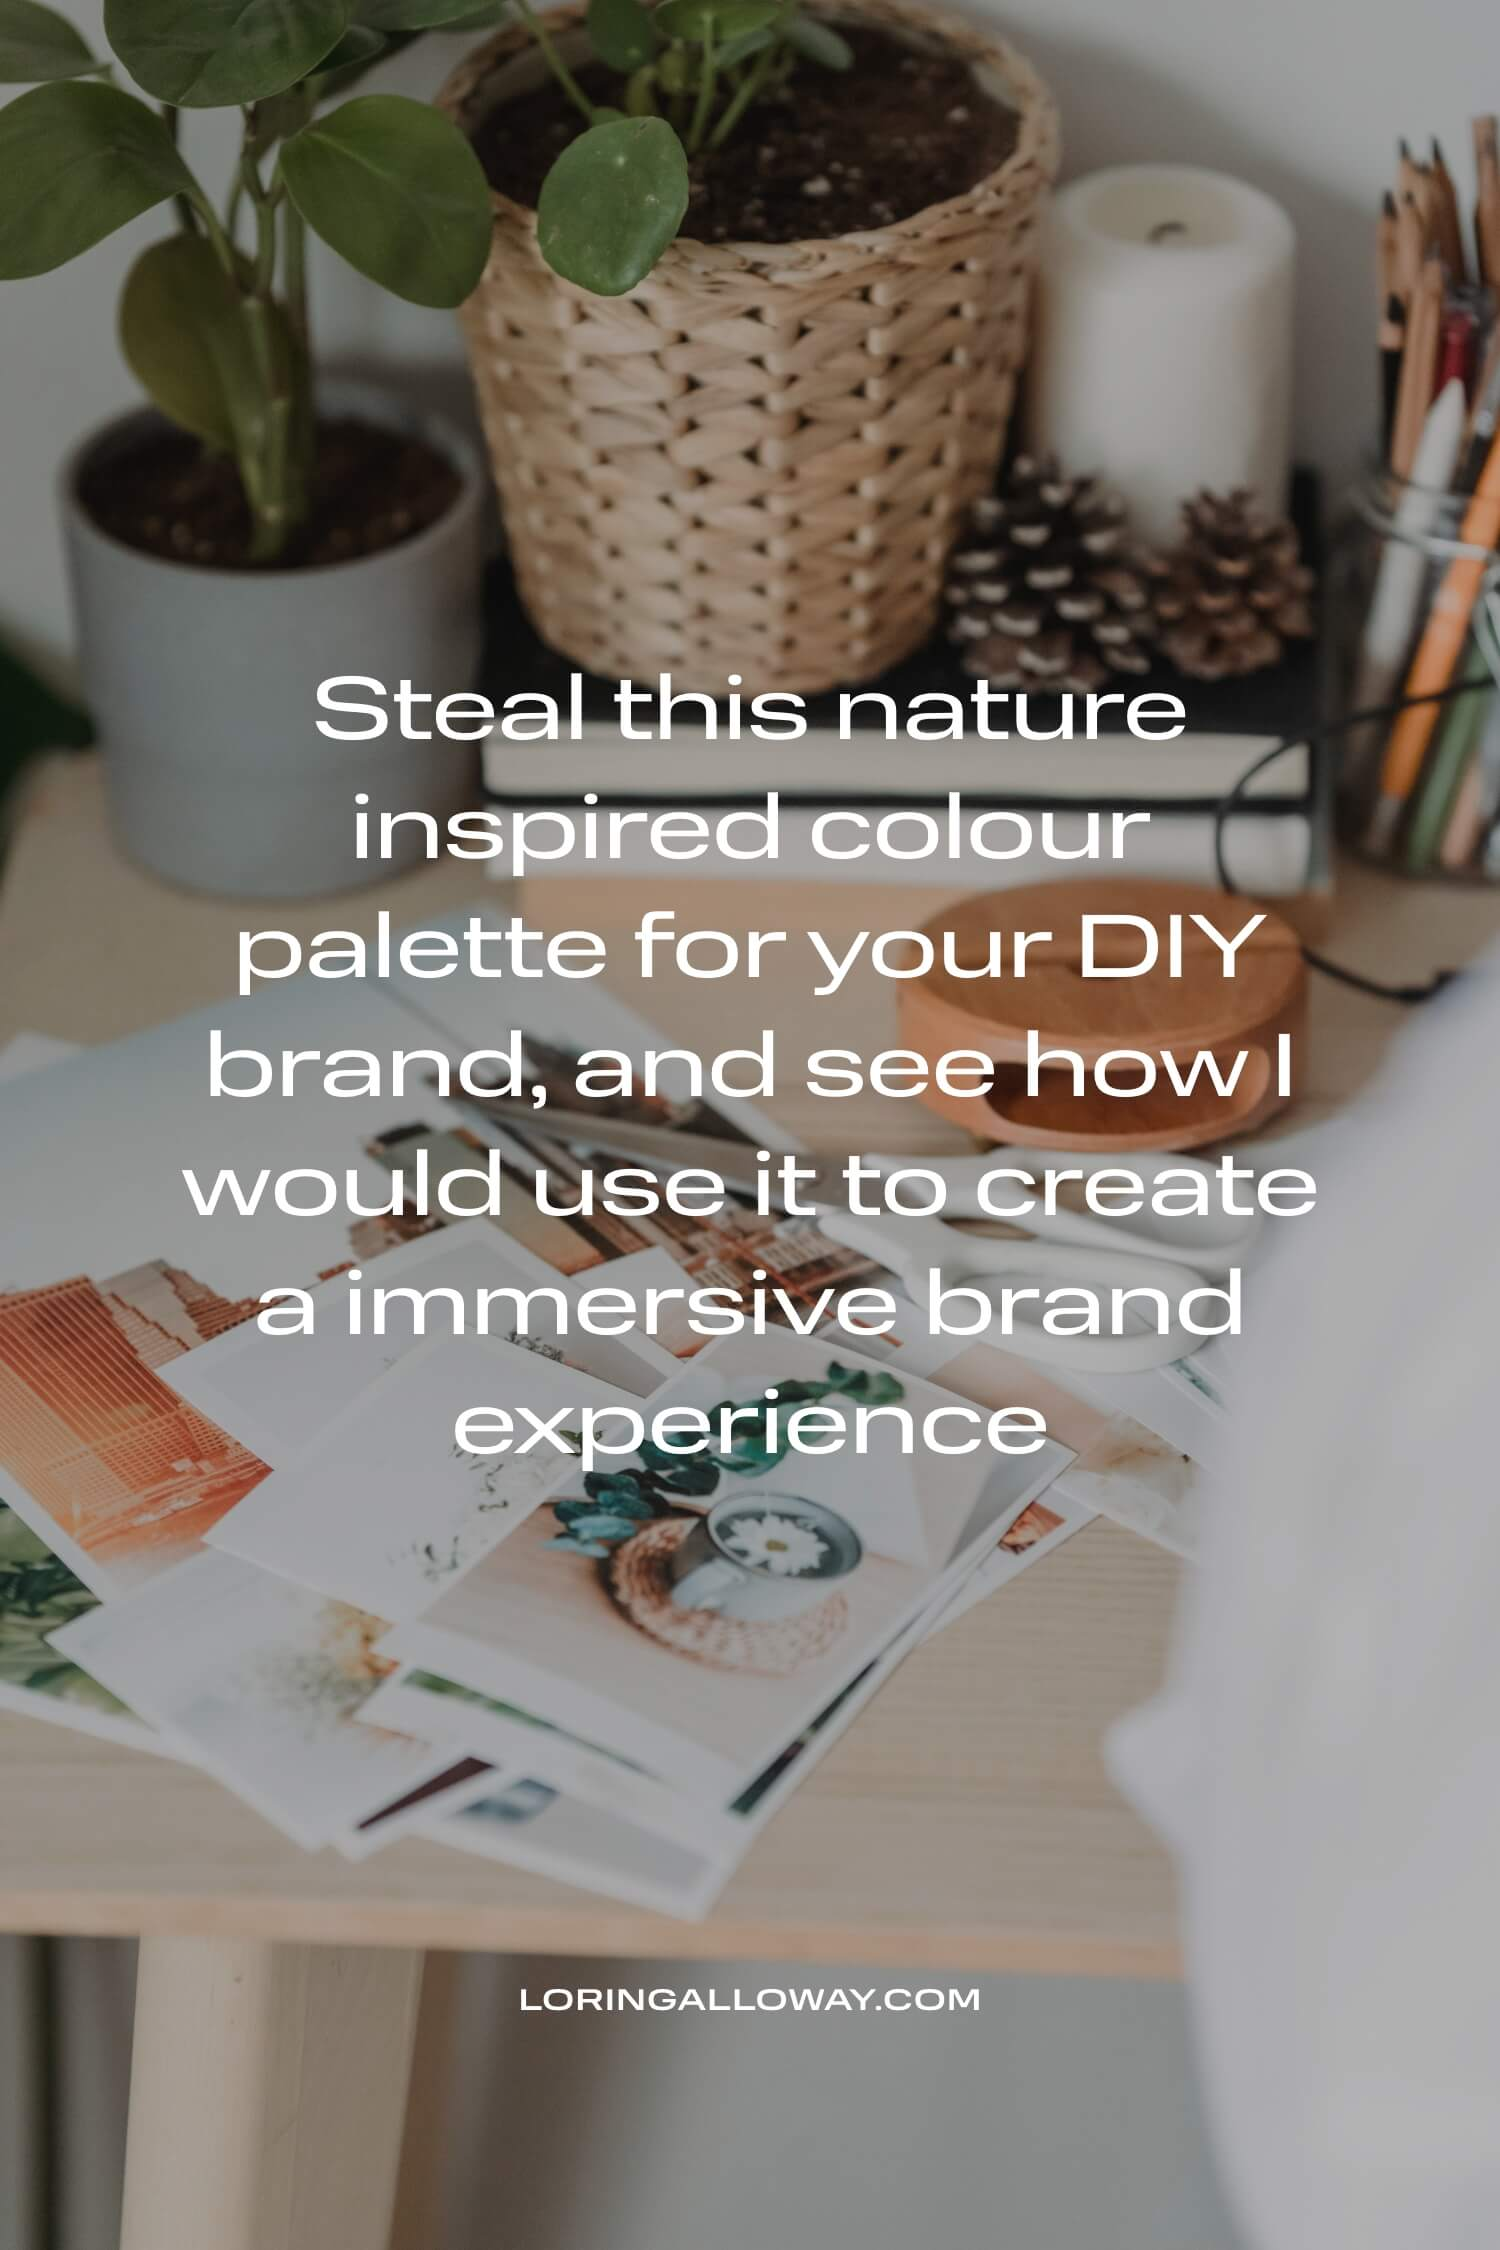 Download this free colour palettes for your small creative business DIY branding project